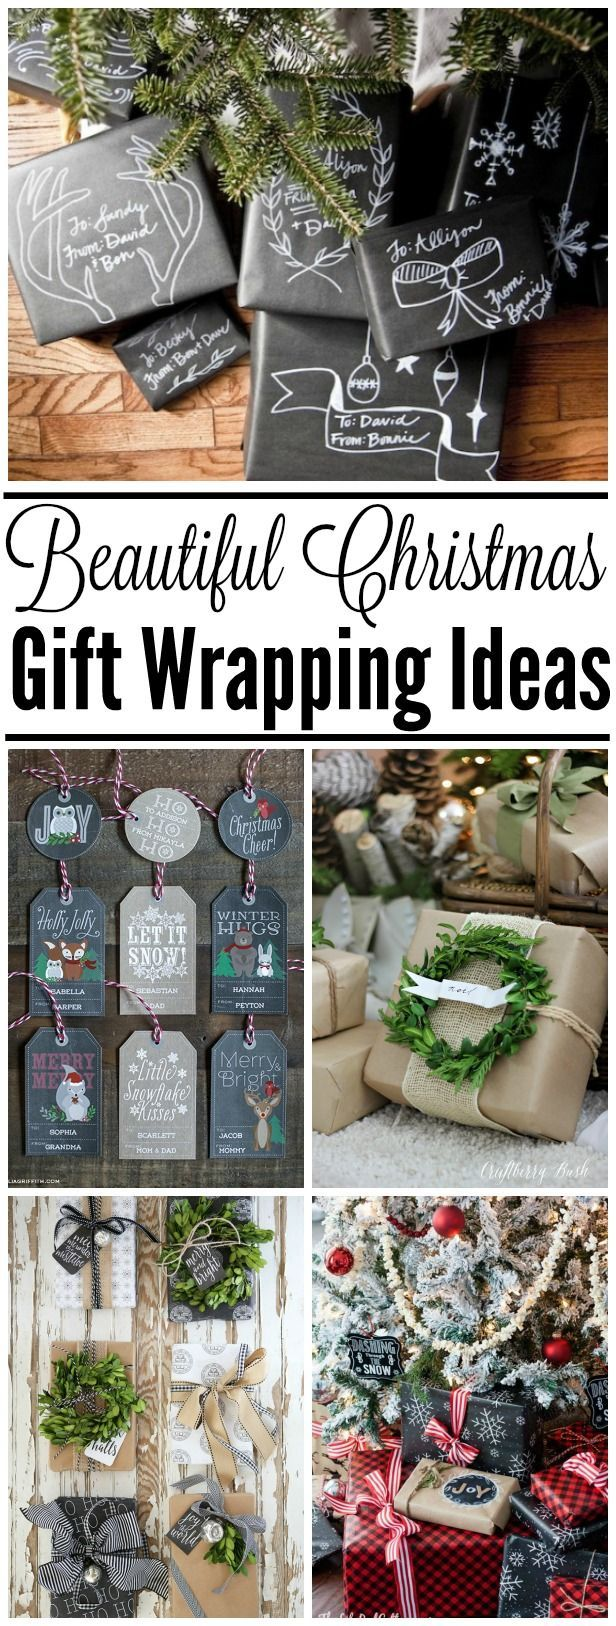 Simple and beautiful ways to dress up your Christmas gifts. Love these Christmas gift wrapping ideas!